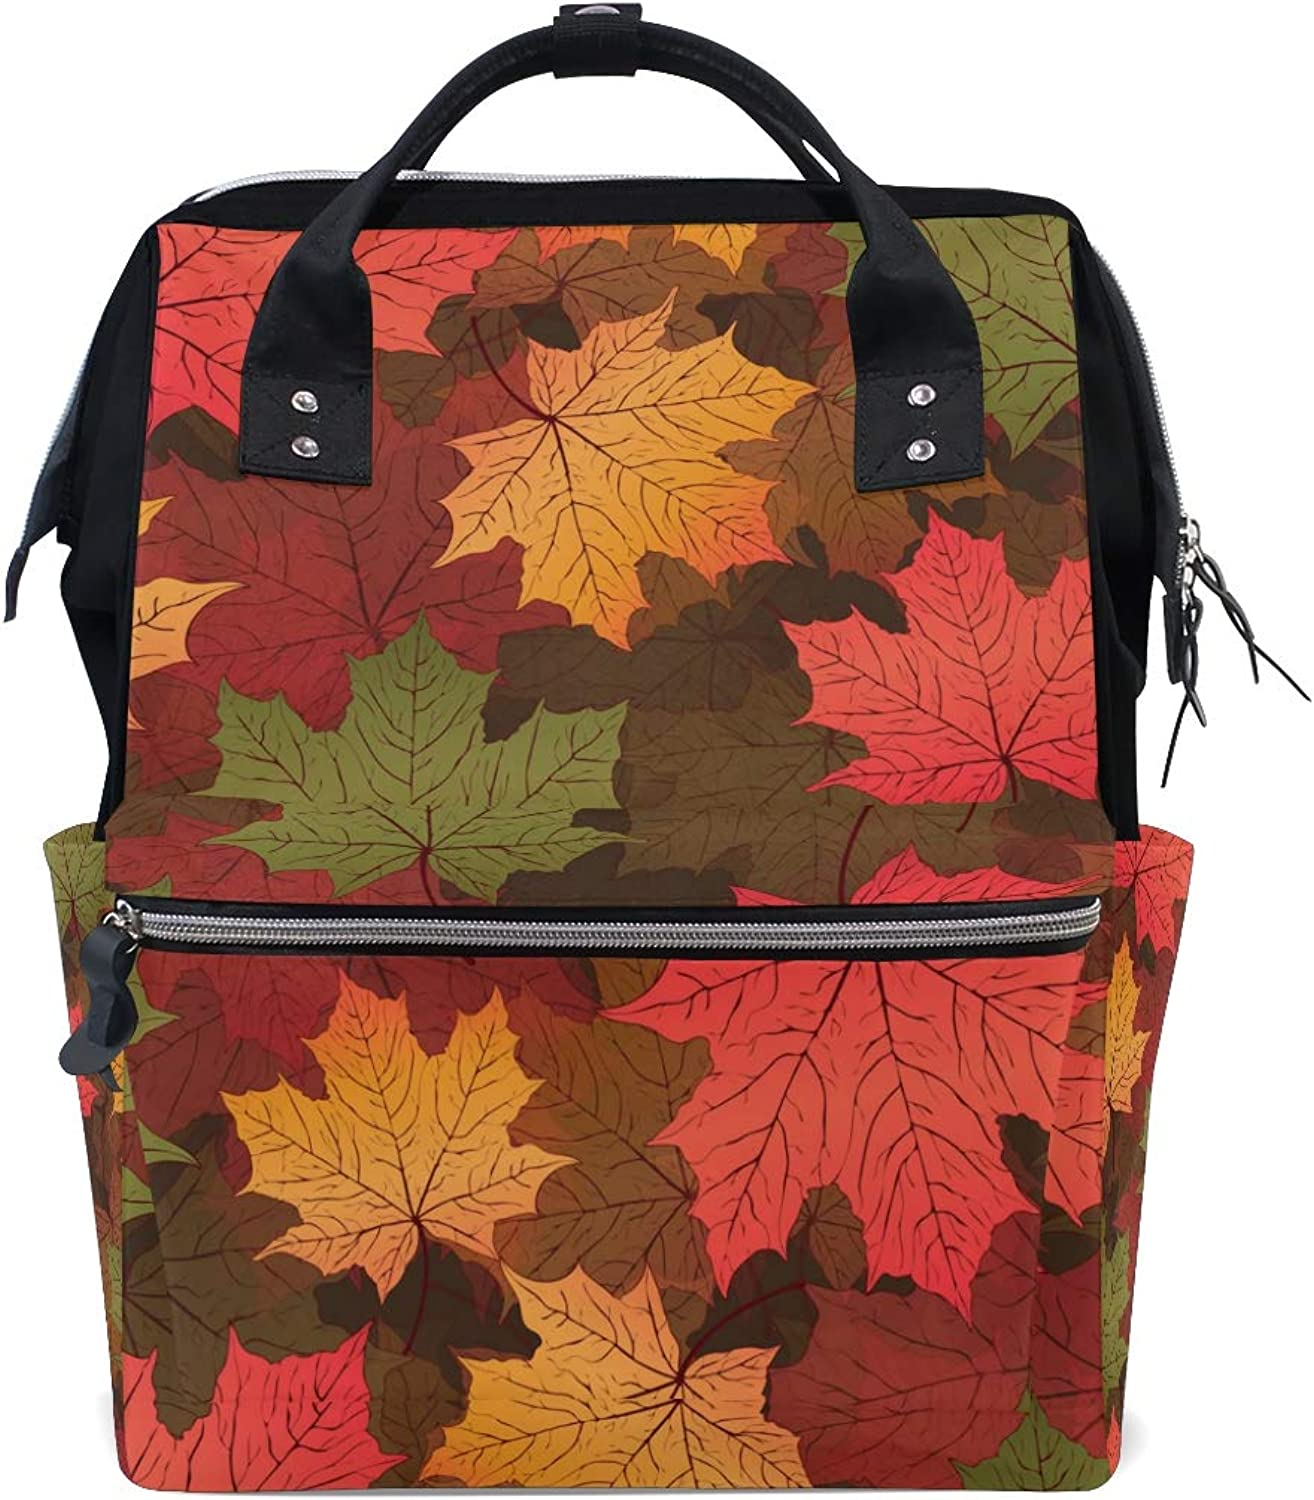 FAJRO Autumn Red Maple Leaves PatternTravel Backpack Canvas Handbag School Pack